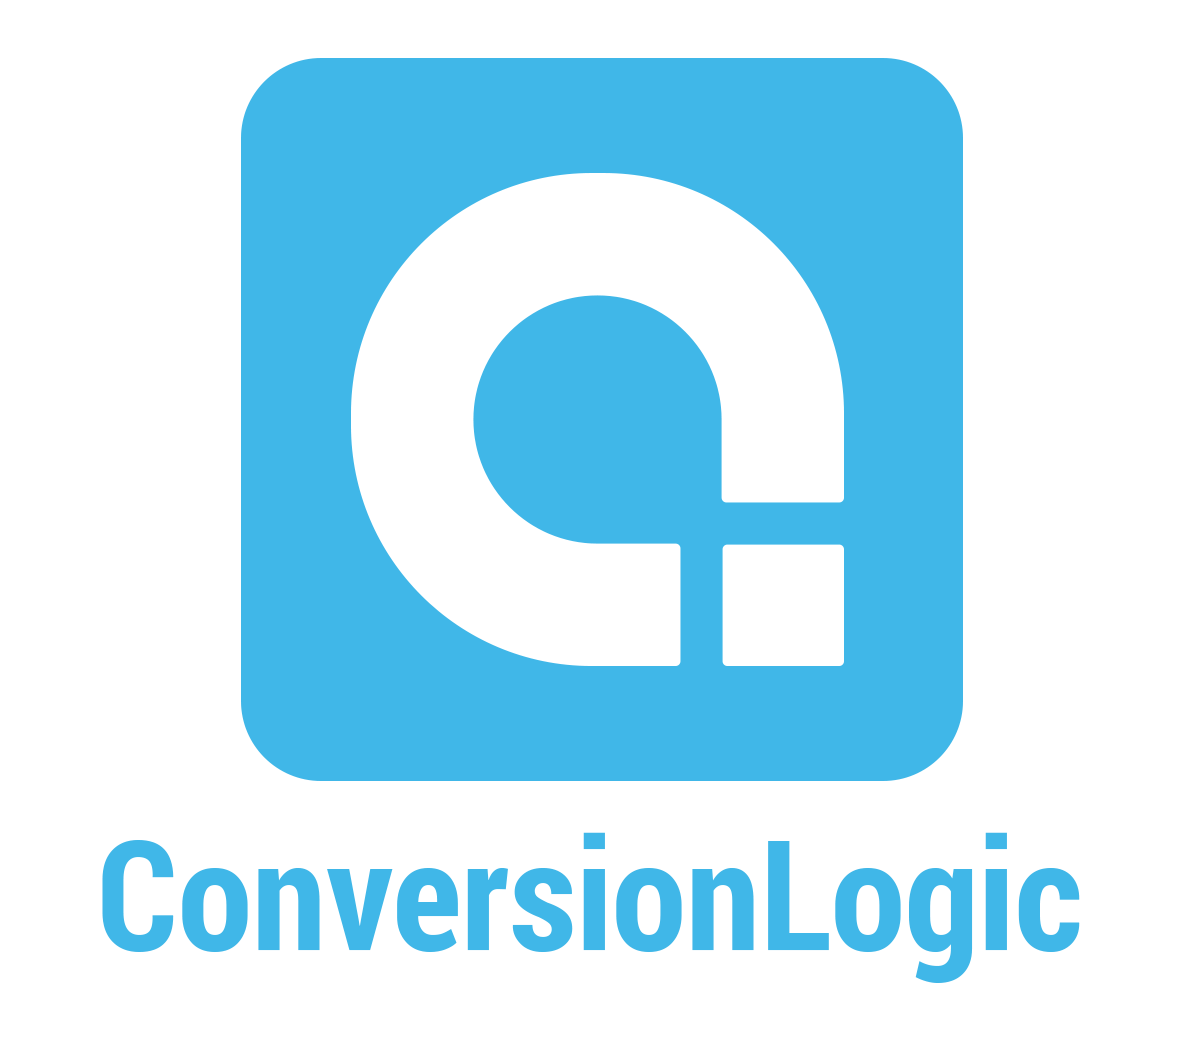 CL-StackedLogo-Blue_(1).png